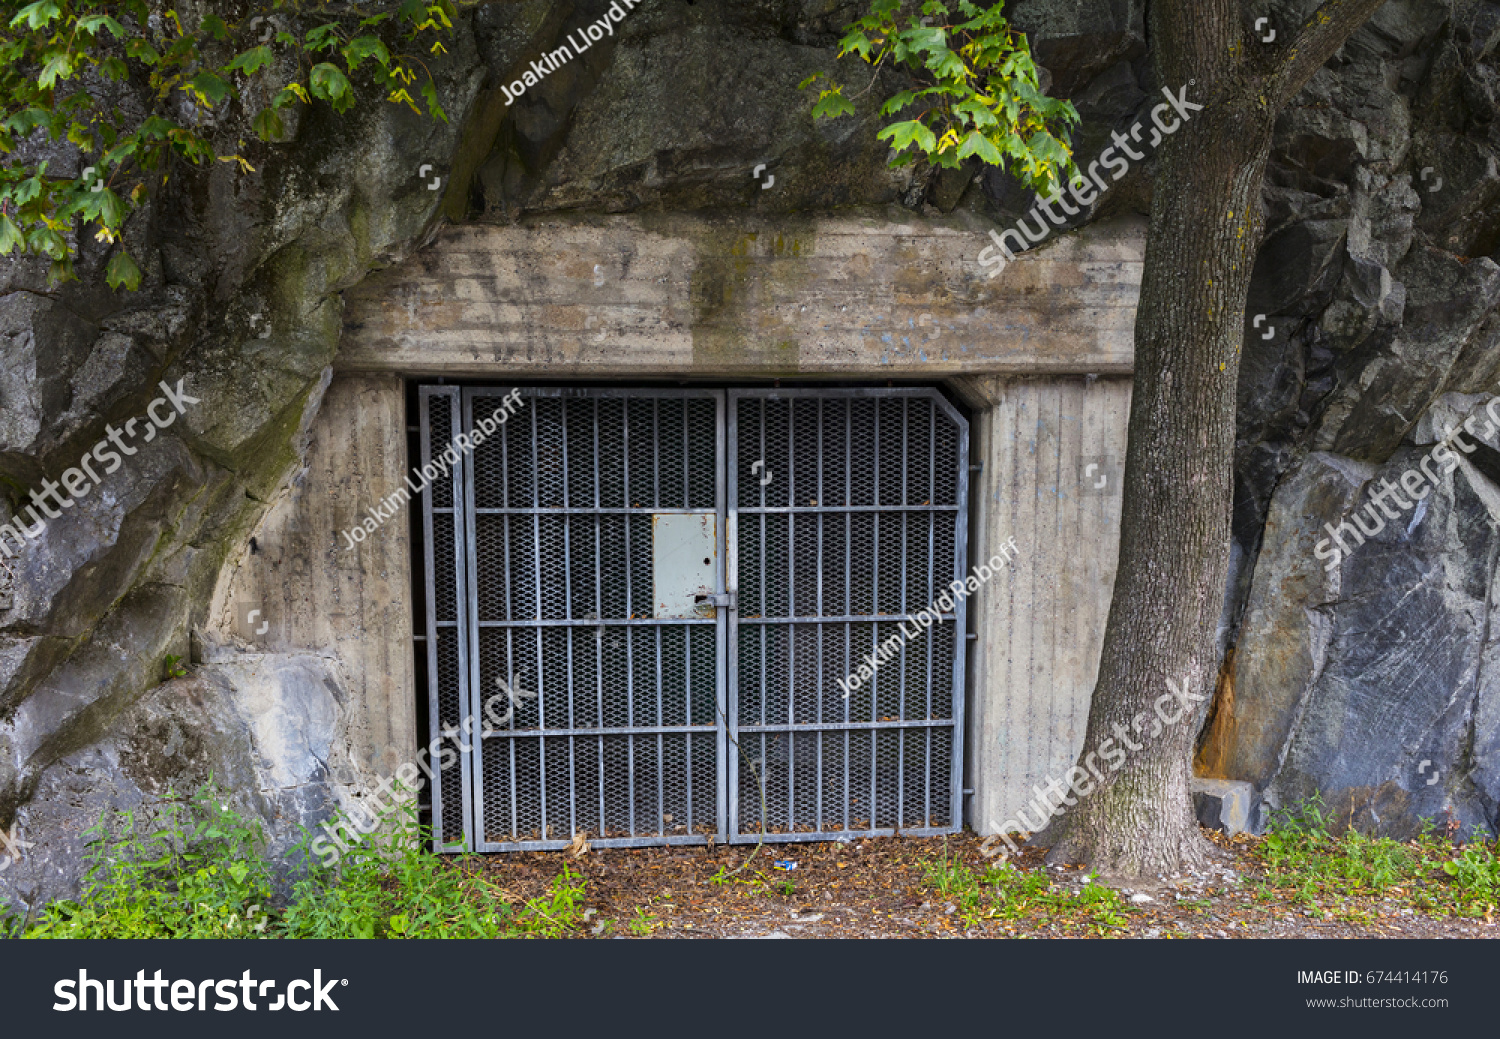 A locked metal gated door at the entrance to a vintage bunker or shelter built & Locked Metal Gated Door Entrance Vintage Stock Photo 674414176 ...